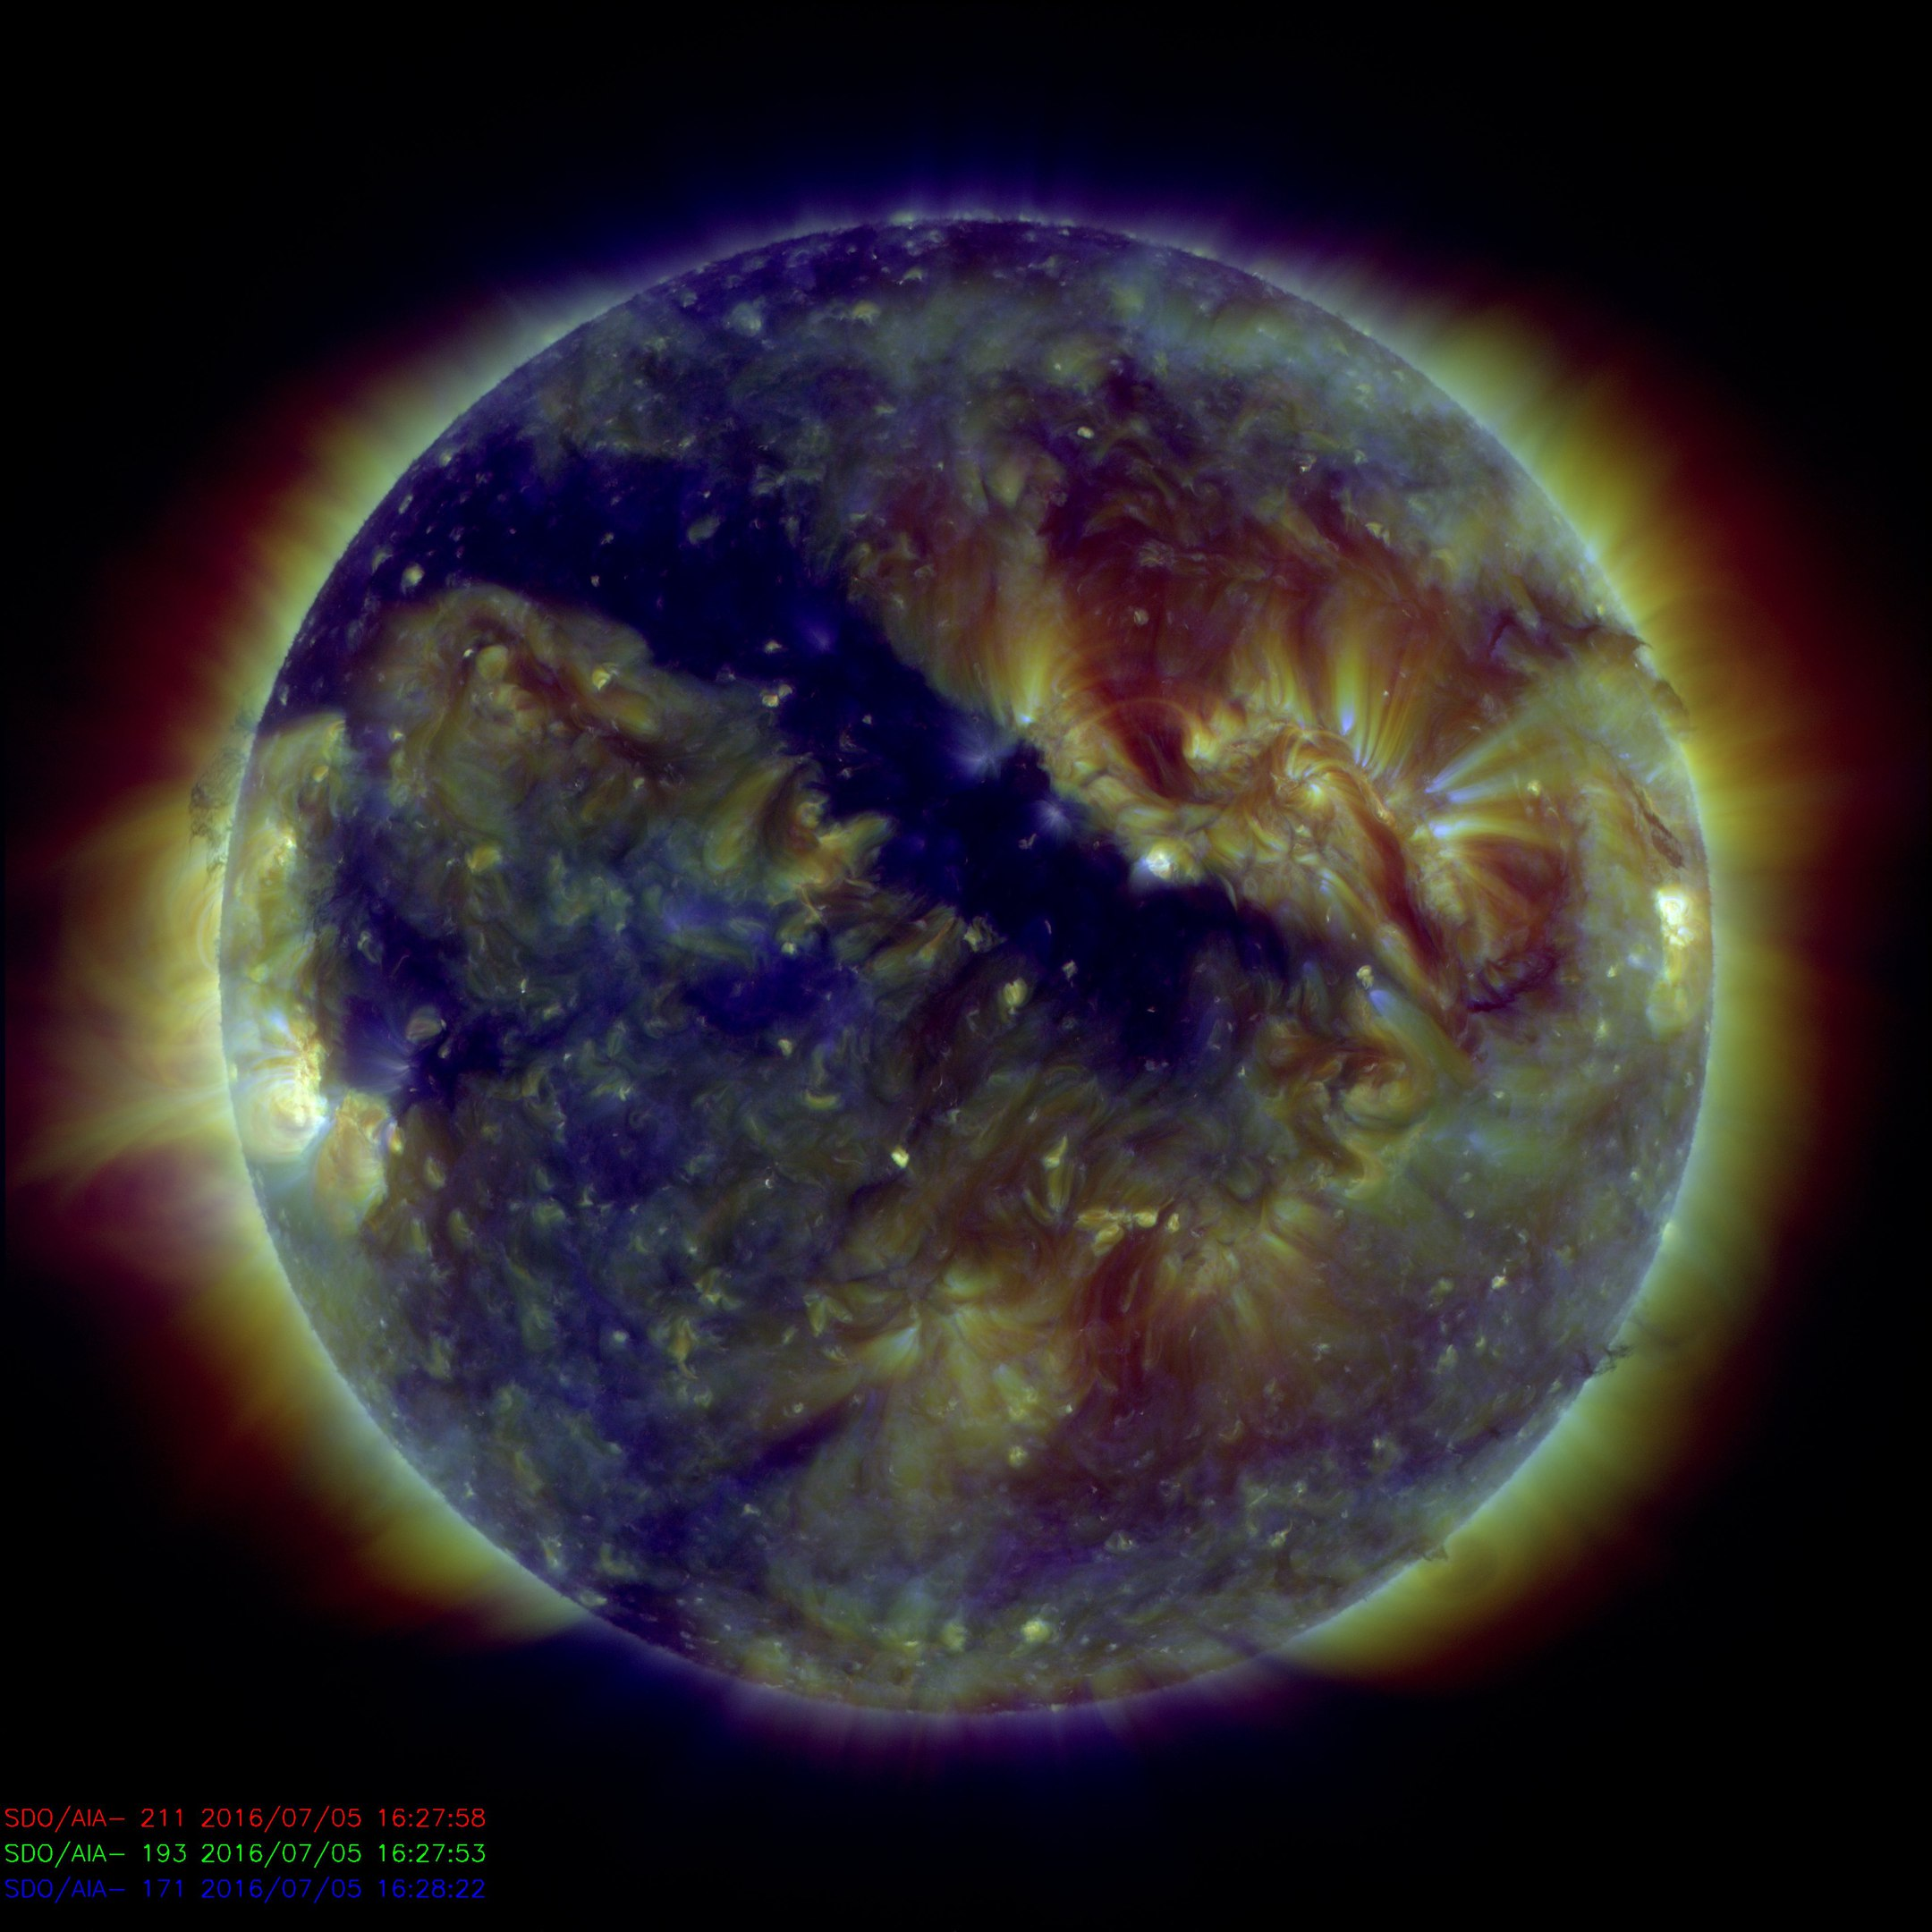 coronal hole sun july 5 2016, coronal hole sun july 2016, magnetic canyon sun july 2016, coronal hole july 5 2016, coronal hole july 5 2016 pictures, coronal hole july 5 2016 video, Gigantic 700,000 km long magnetic canyon opens up on the sun